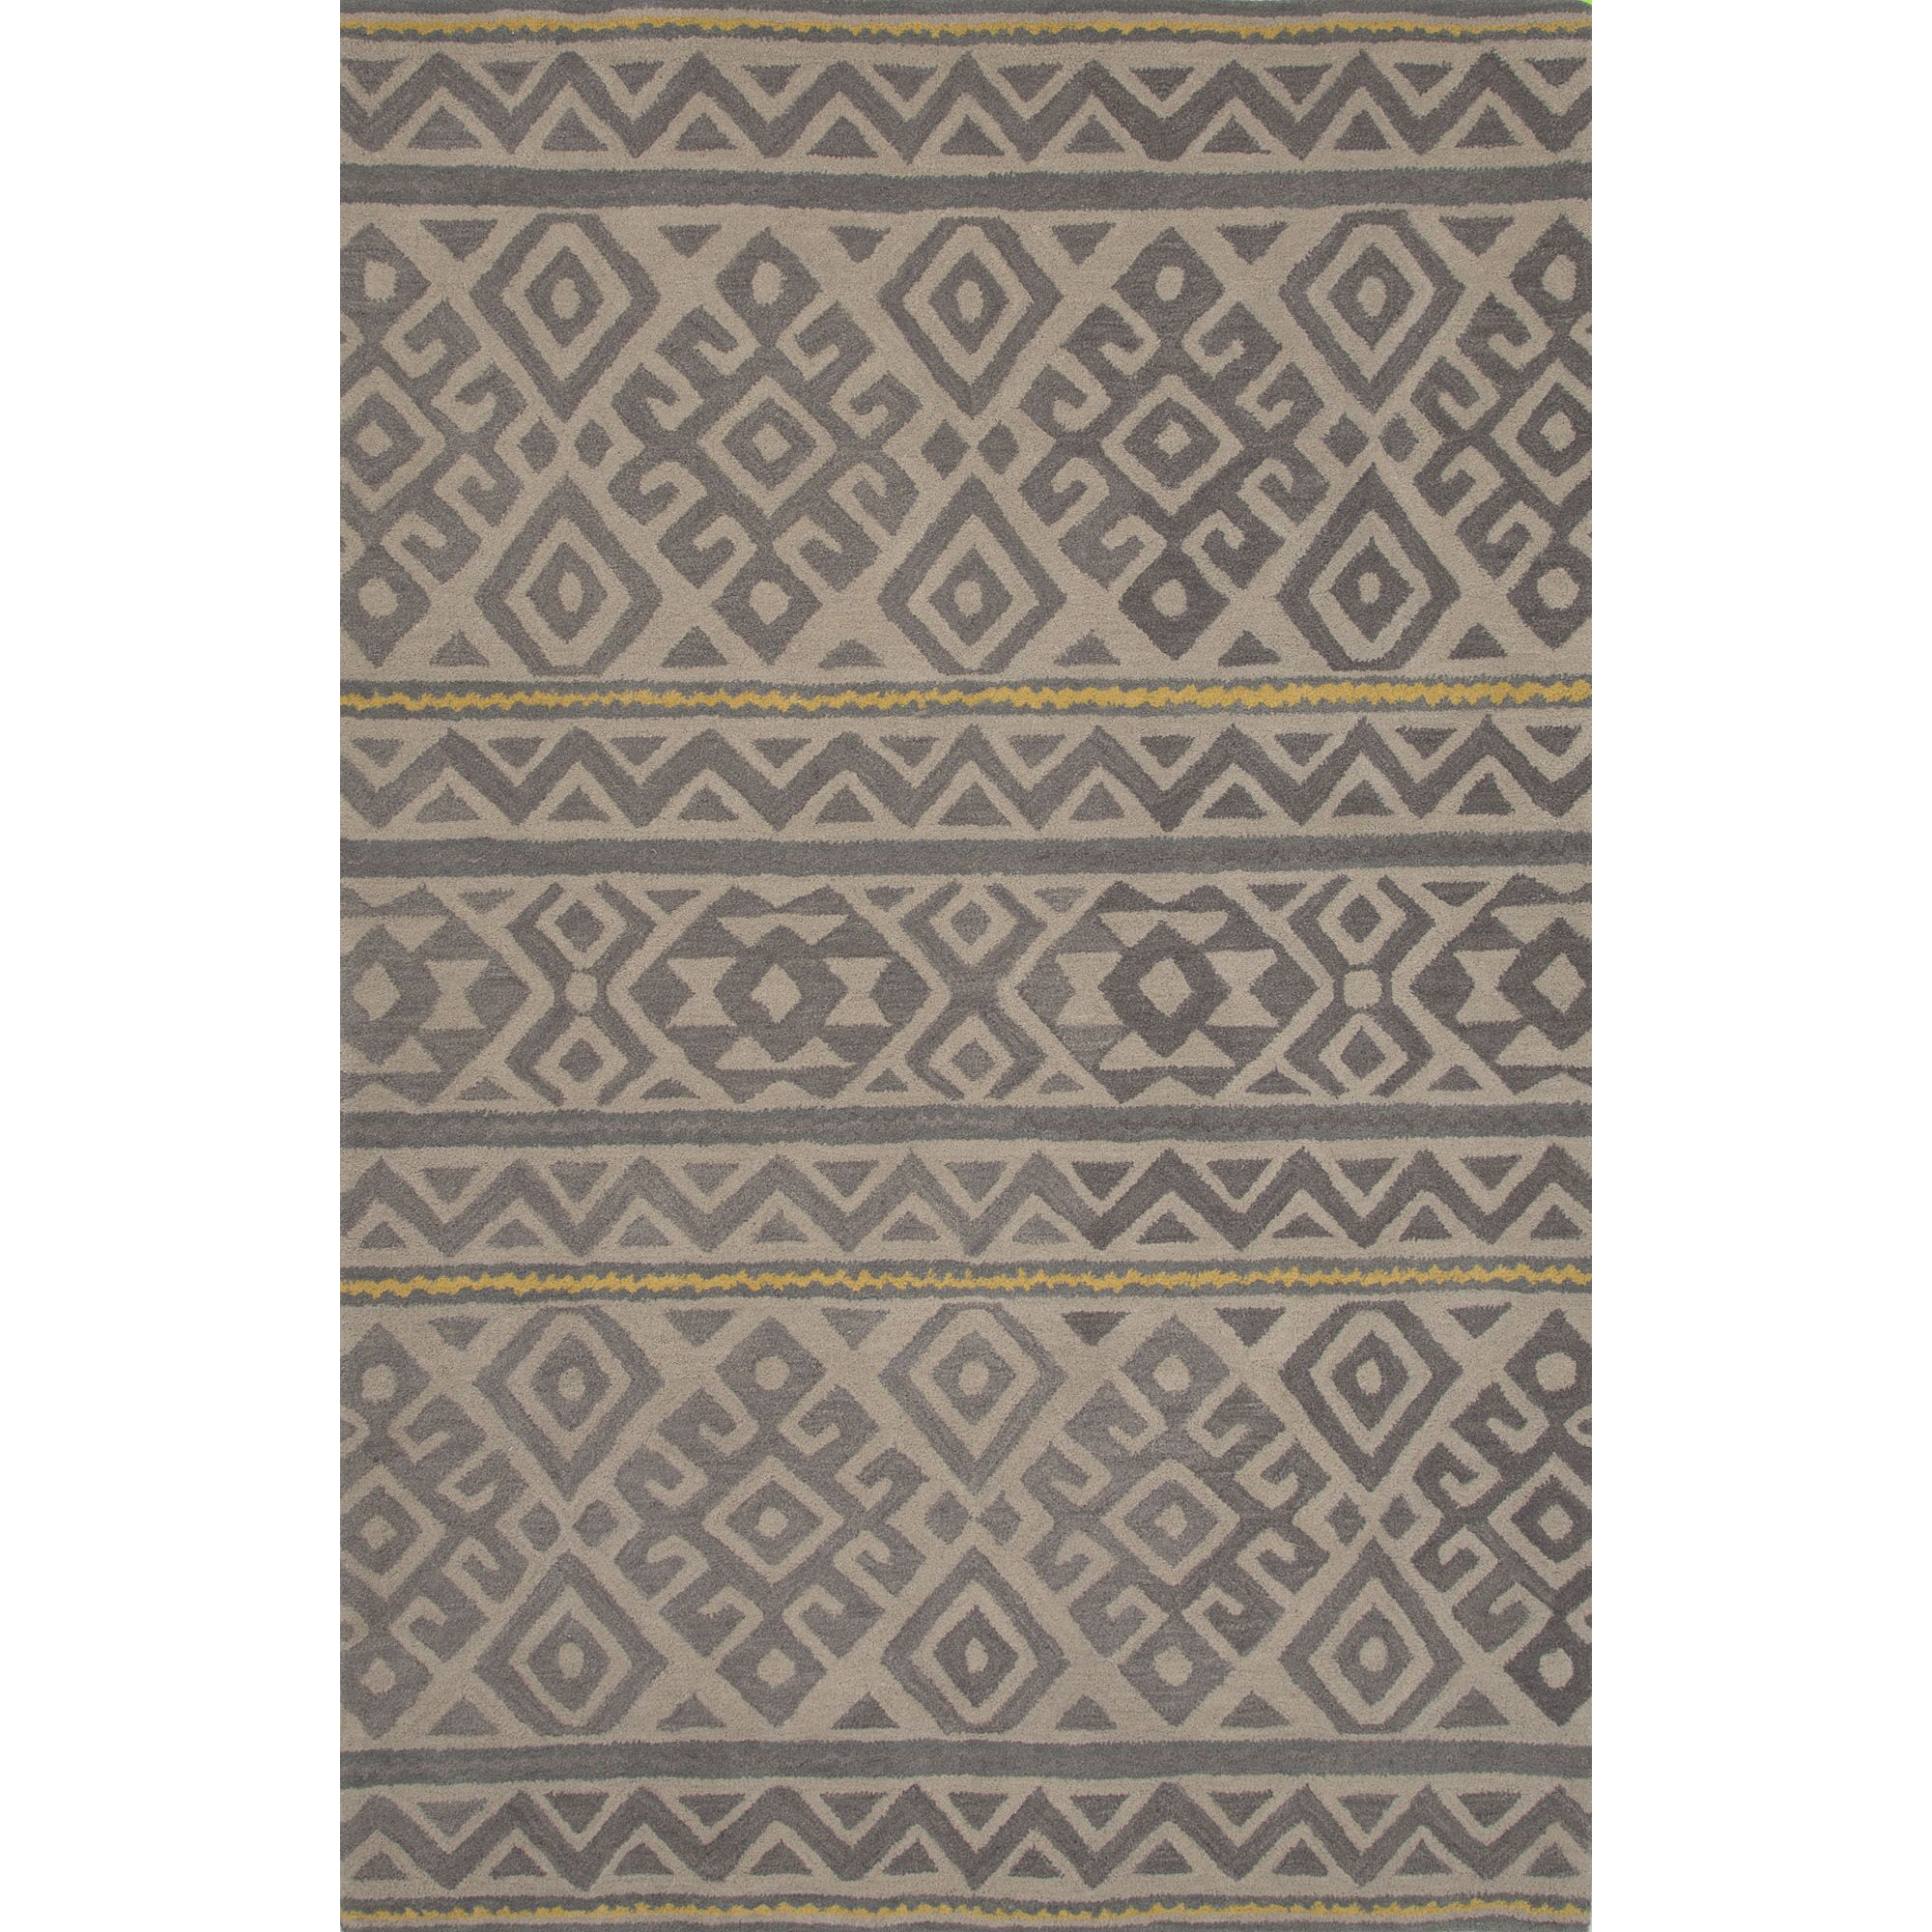 Ferro Hand Tufted Wool Overcast Area Rug Rug Size: 8' x 11'